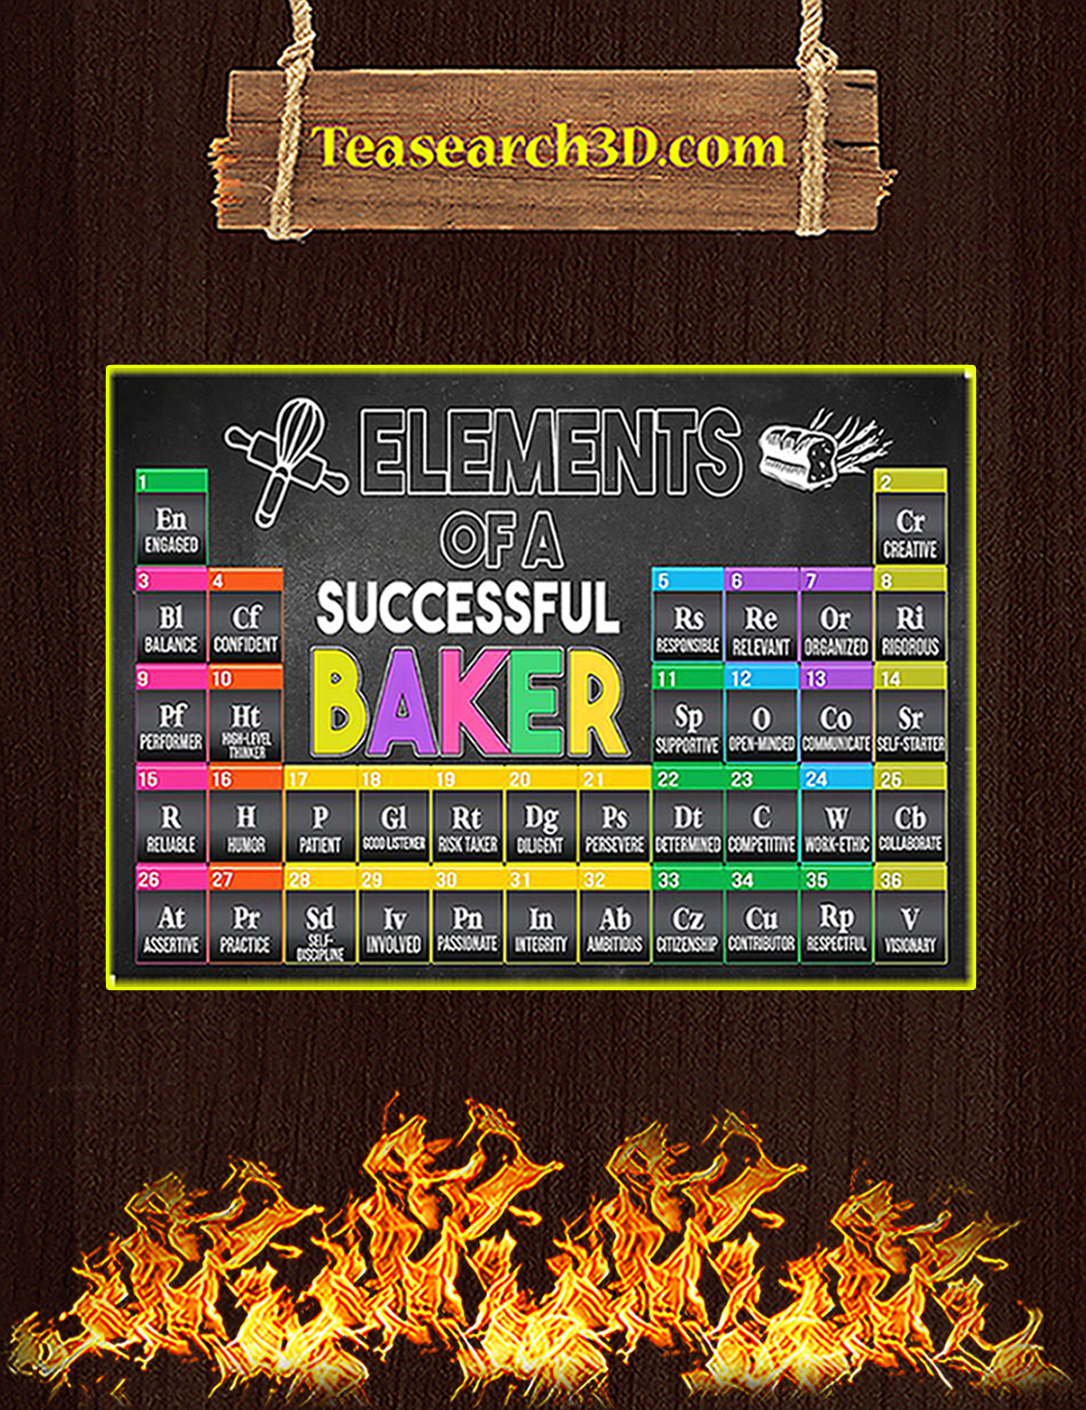 Elements of a successful baker poster A2